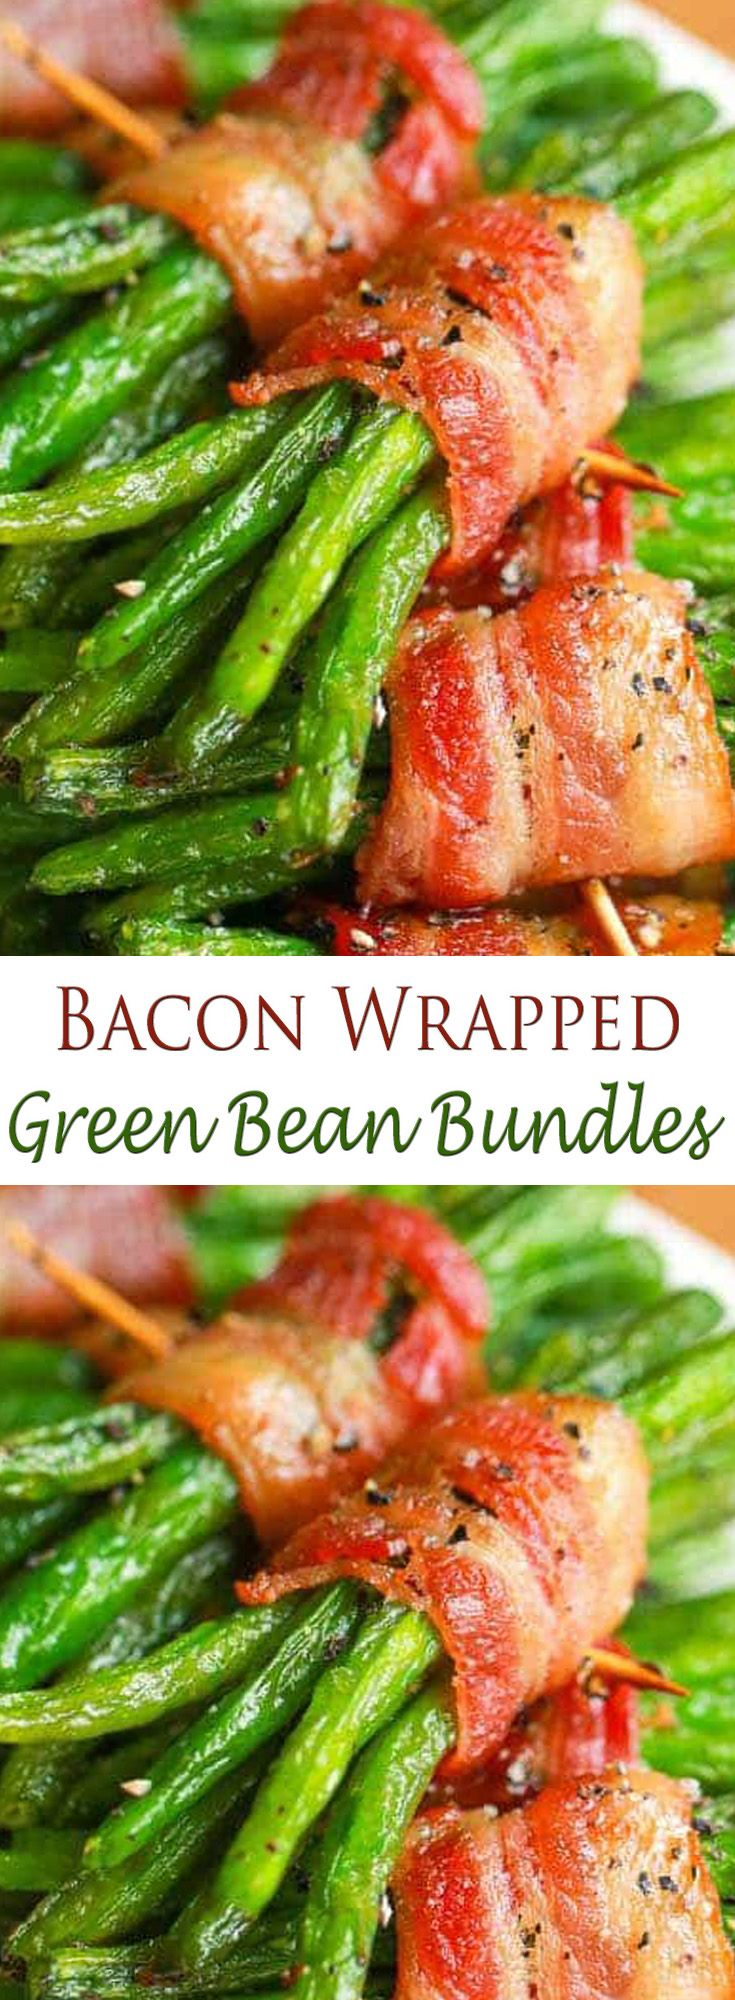 Bacon Wrapped Green Bean Bundles. #CompleteRecipes.com #recipe #recipes #food #foodgasm #cleaneating #healthyfood #healthy #healthyrecipes